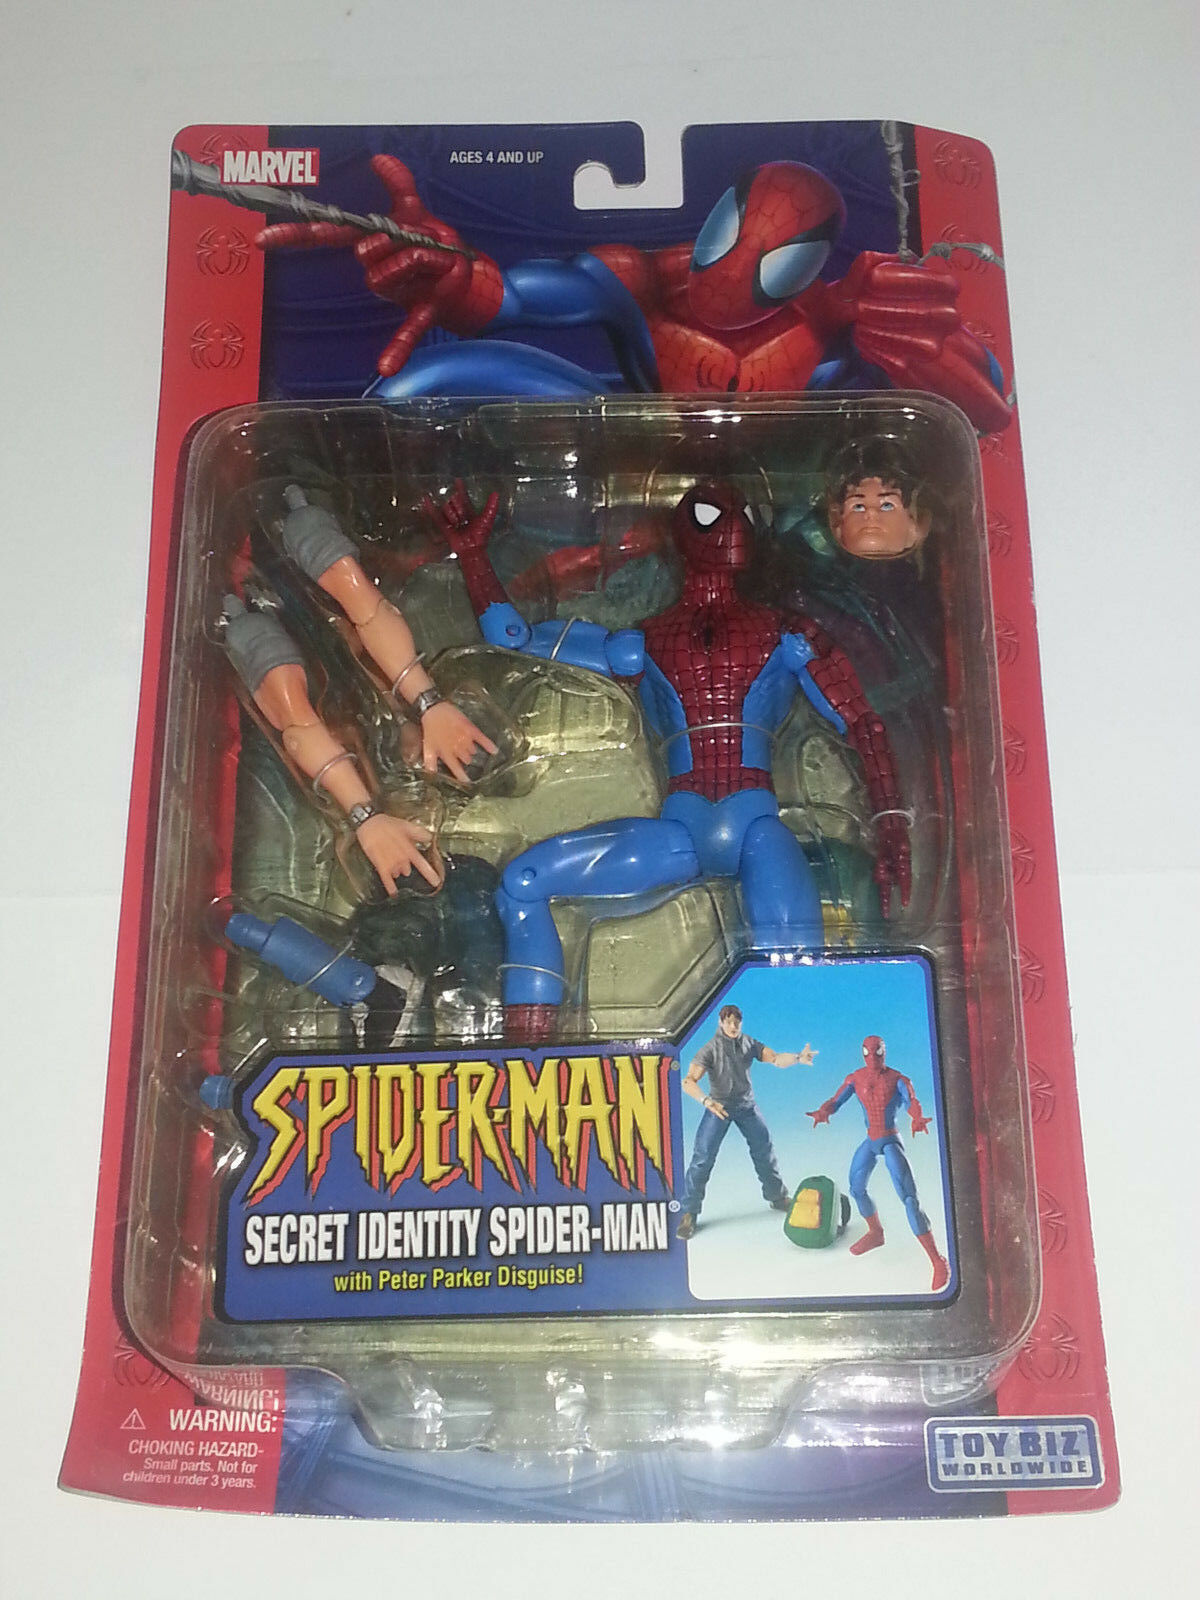 Marvel Legends NEW - SPIDER-MAN Secret Identity PETER PARKER - Spidey Classics